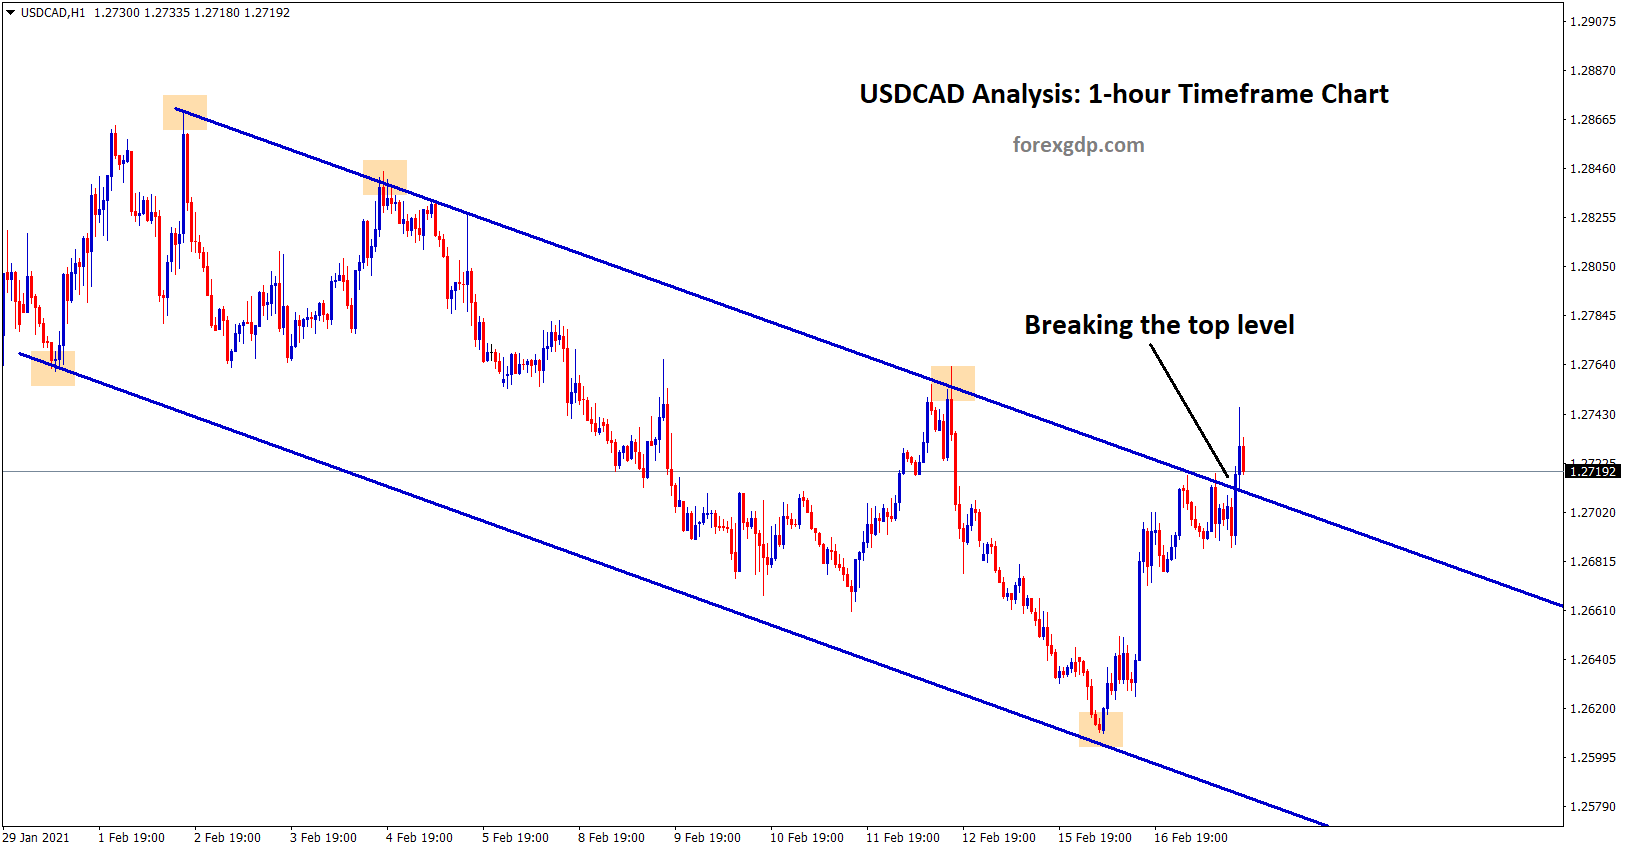 usdcad is breaking the top level of the downtrend line